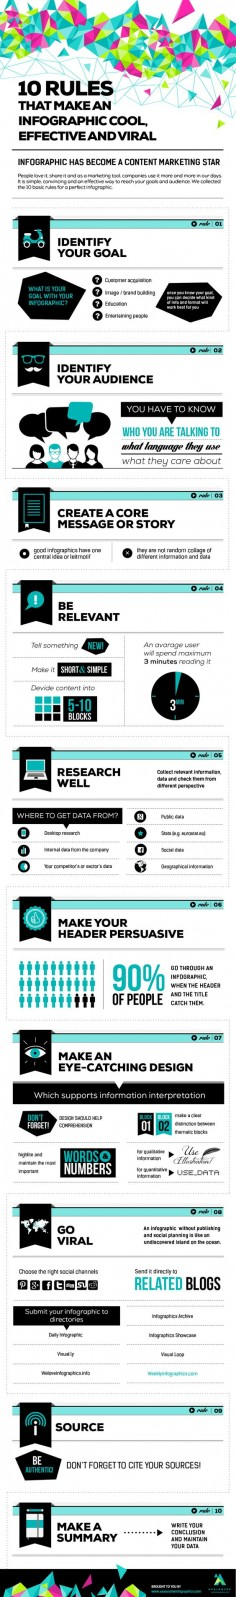 10 Rules For Making An Infographic Effective & Viral #infographic